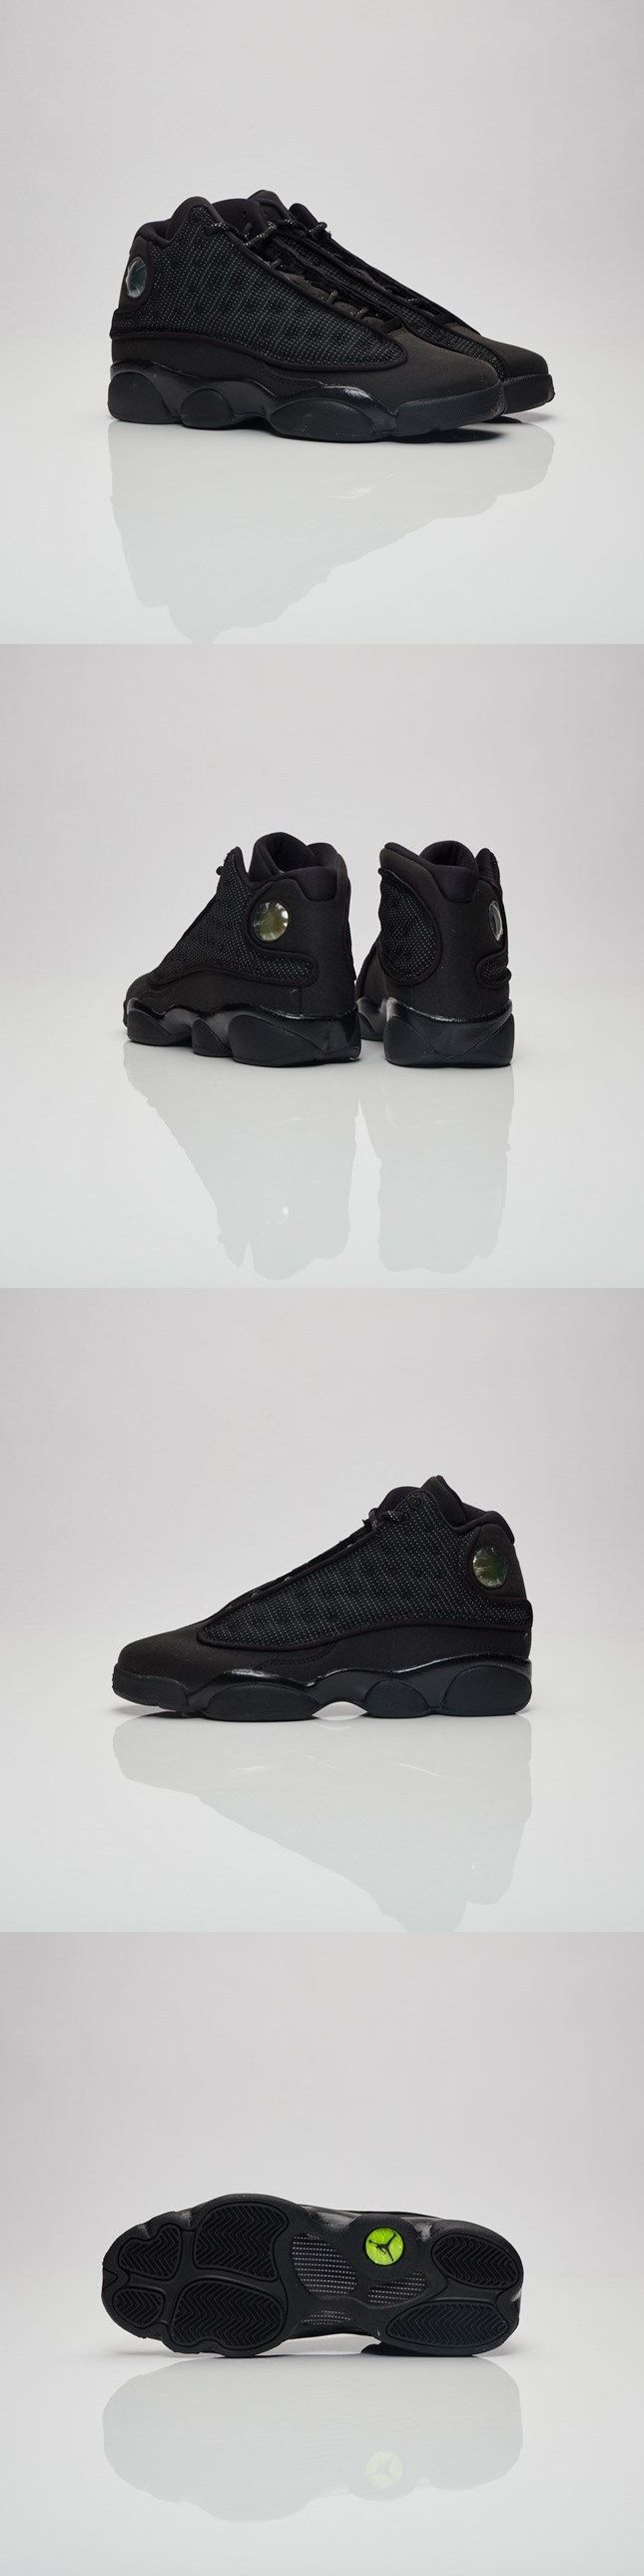 Boys Shoes 57929: Air Jordan Retro 13 Gs Black Cat 884129-011 Size 4-7Y 100% Authentic New Black -> BUY IT NOW ONLY: $129.99 on eBay!